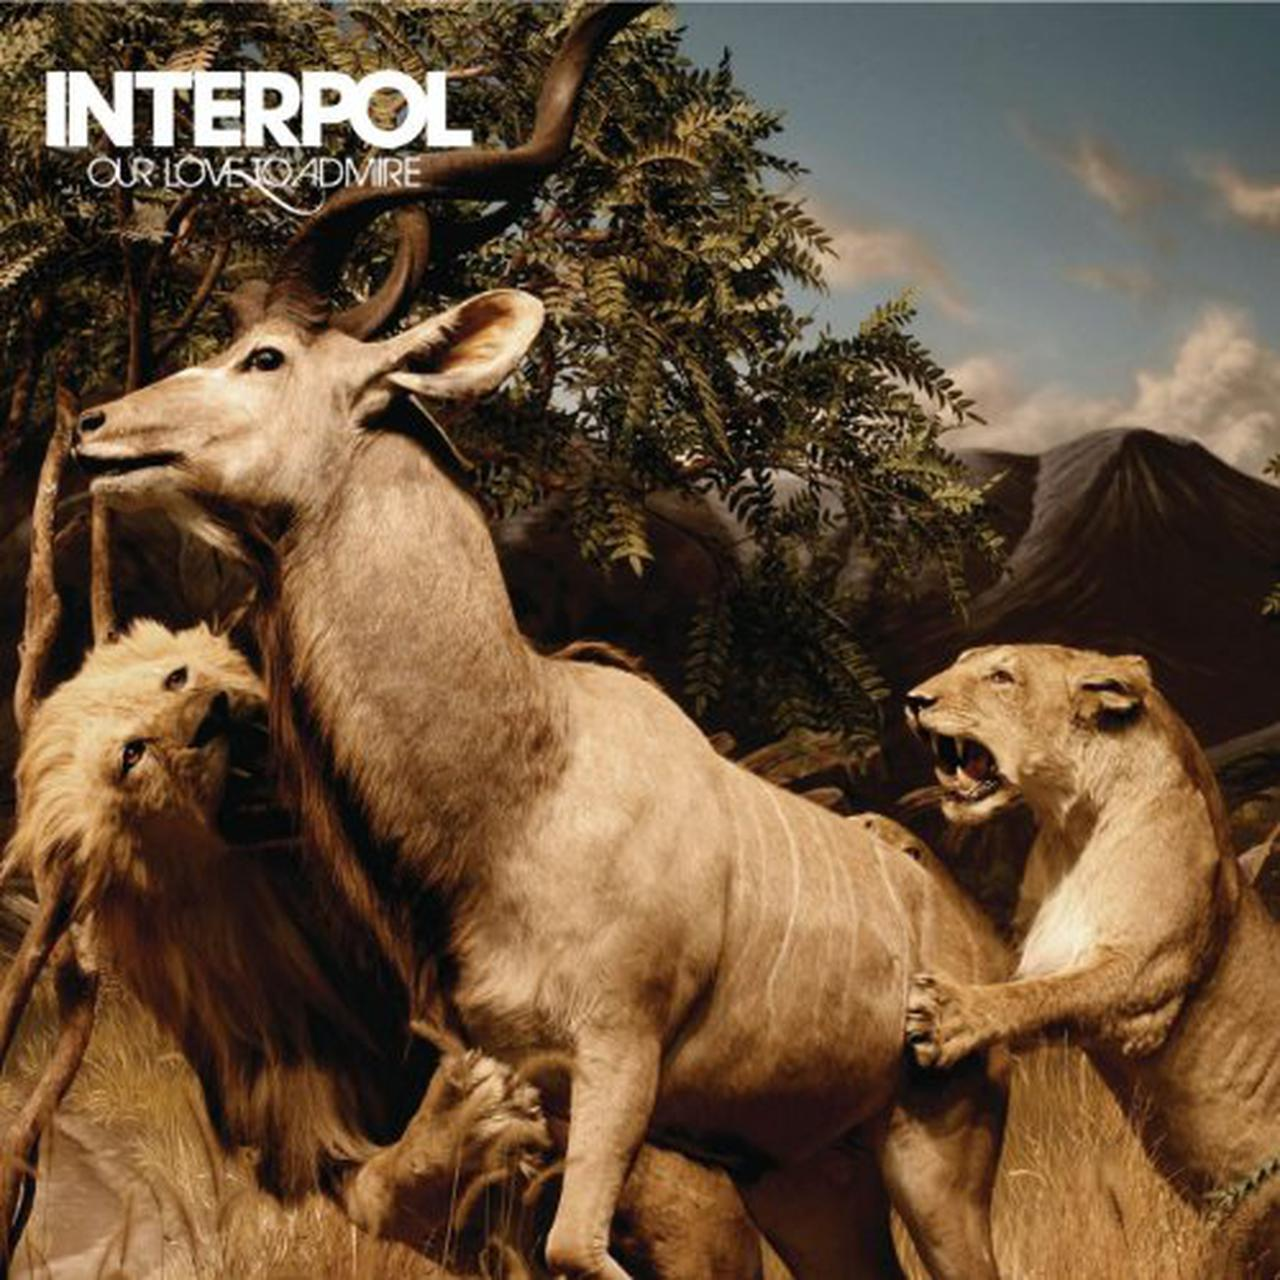 Our Love To Admire by Interpol image